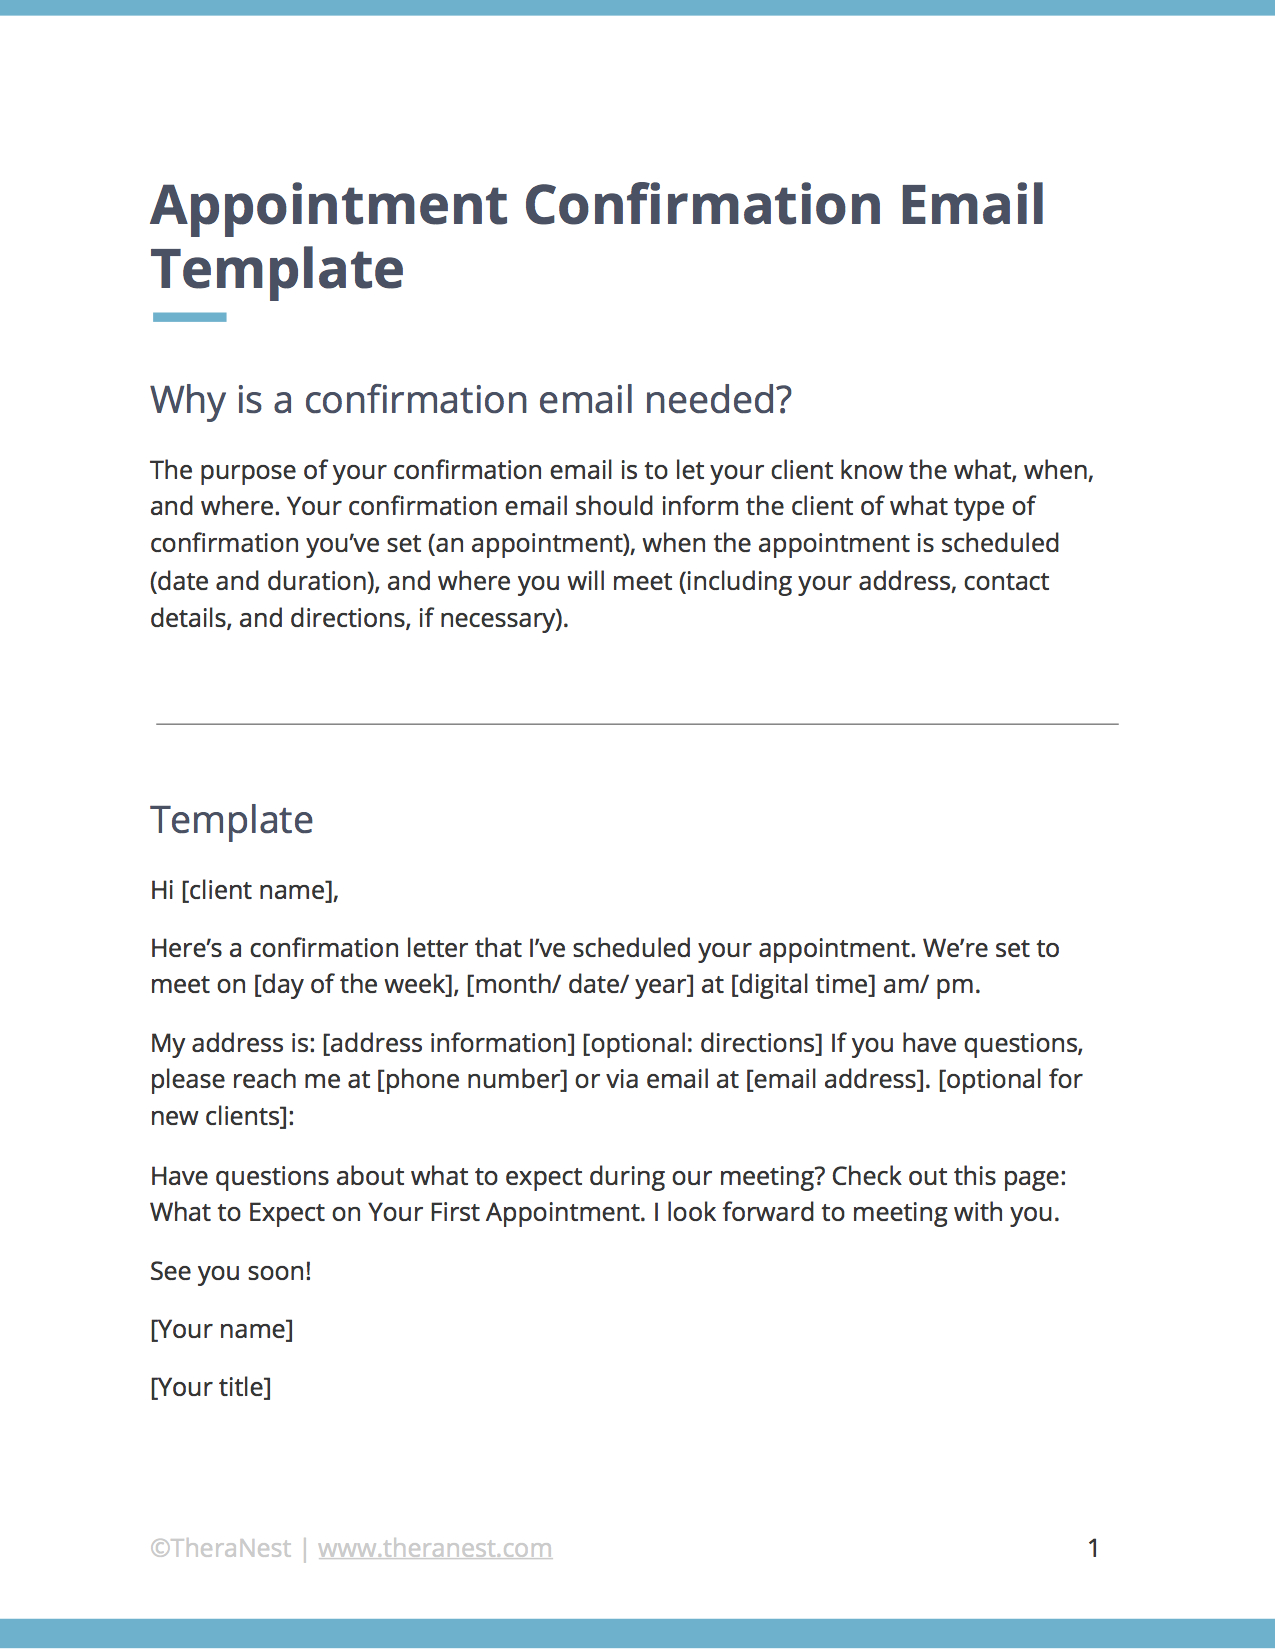 Goodbye Letter to Addiction Template - Appointment Confirmation Email Template for therapists